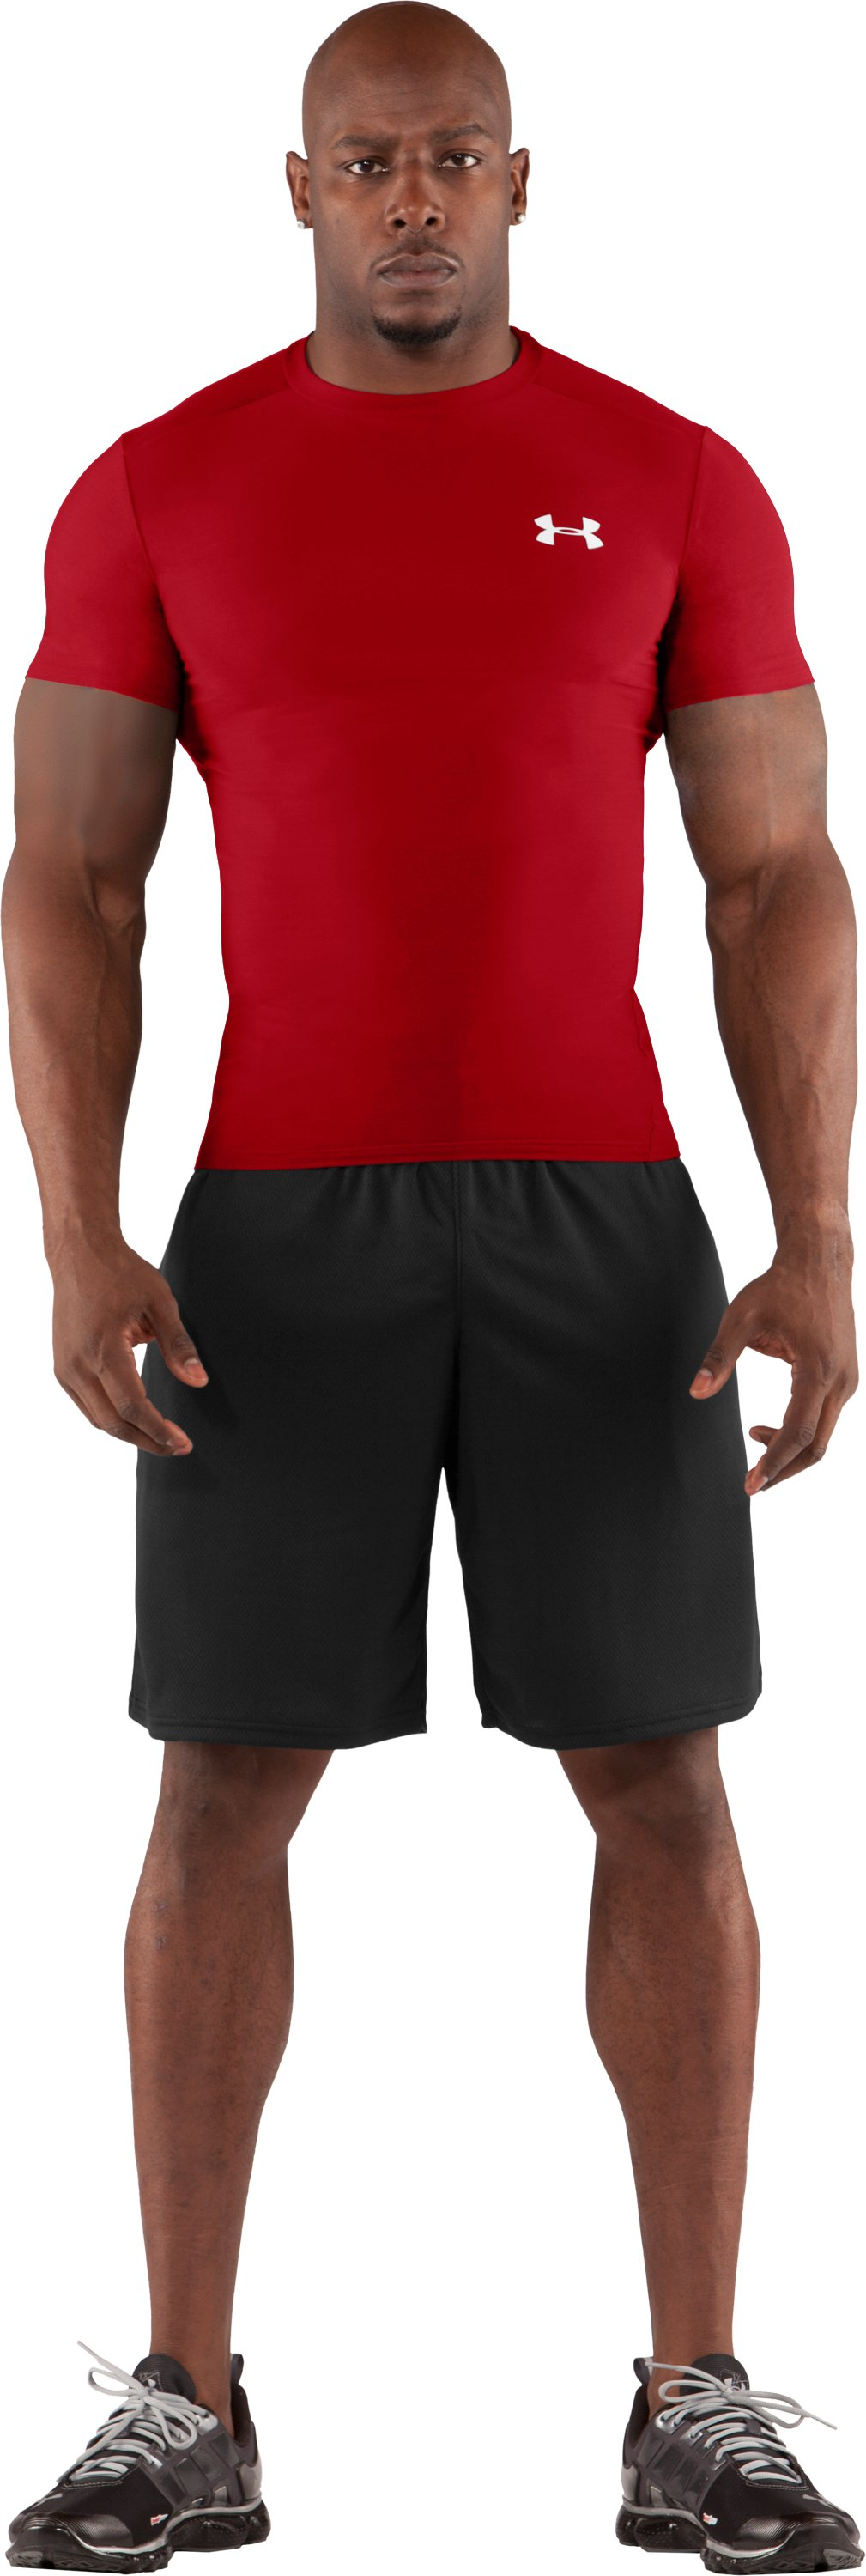 Men's HeatGear® Compression Short Sleeve T-Shirt, Red, Front